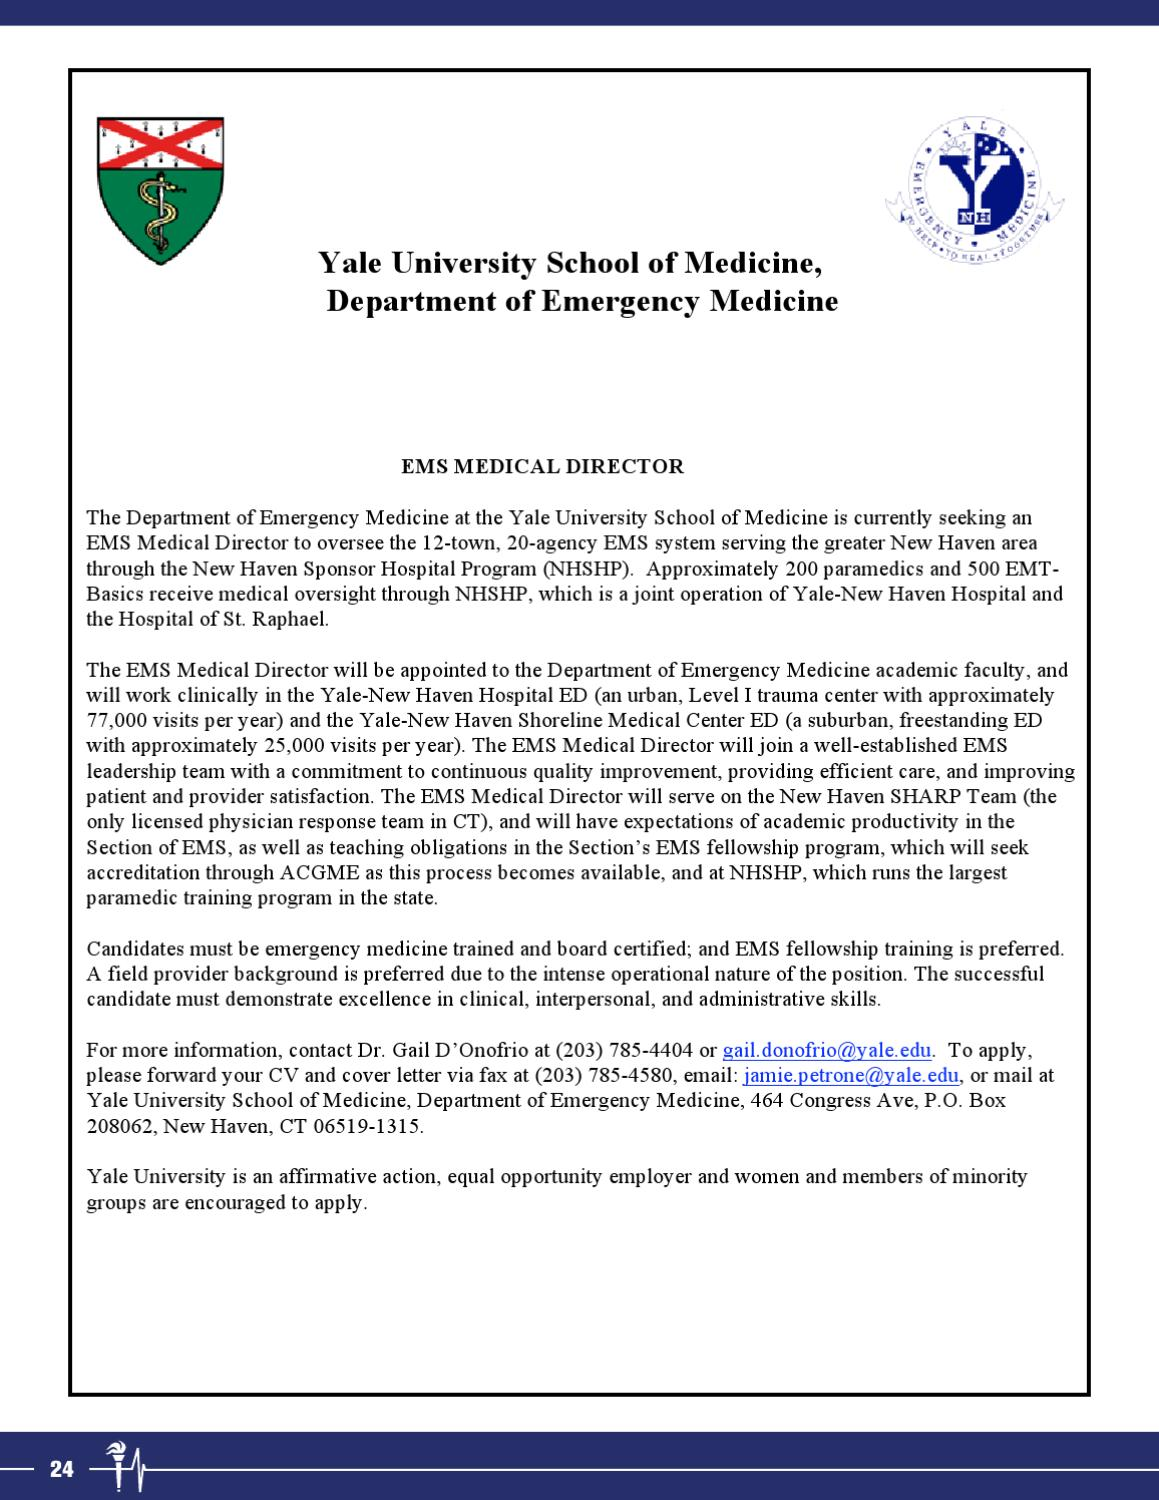 Stunning Ems Medical Director Cover Letter Ideas - New Coloring ...